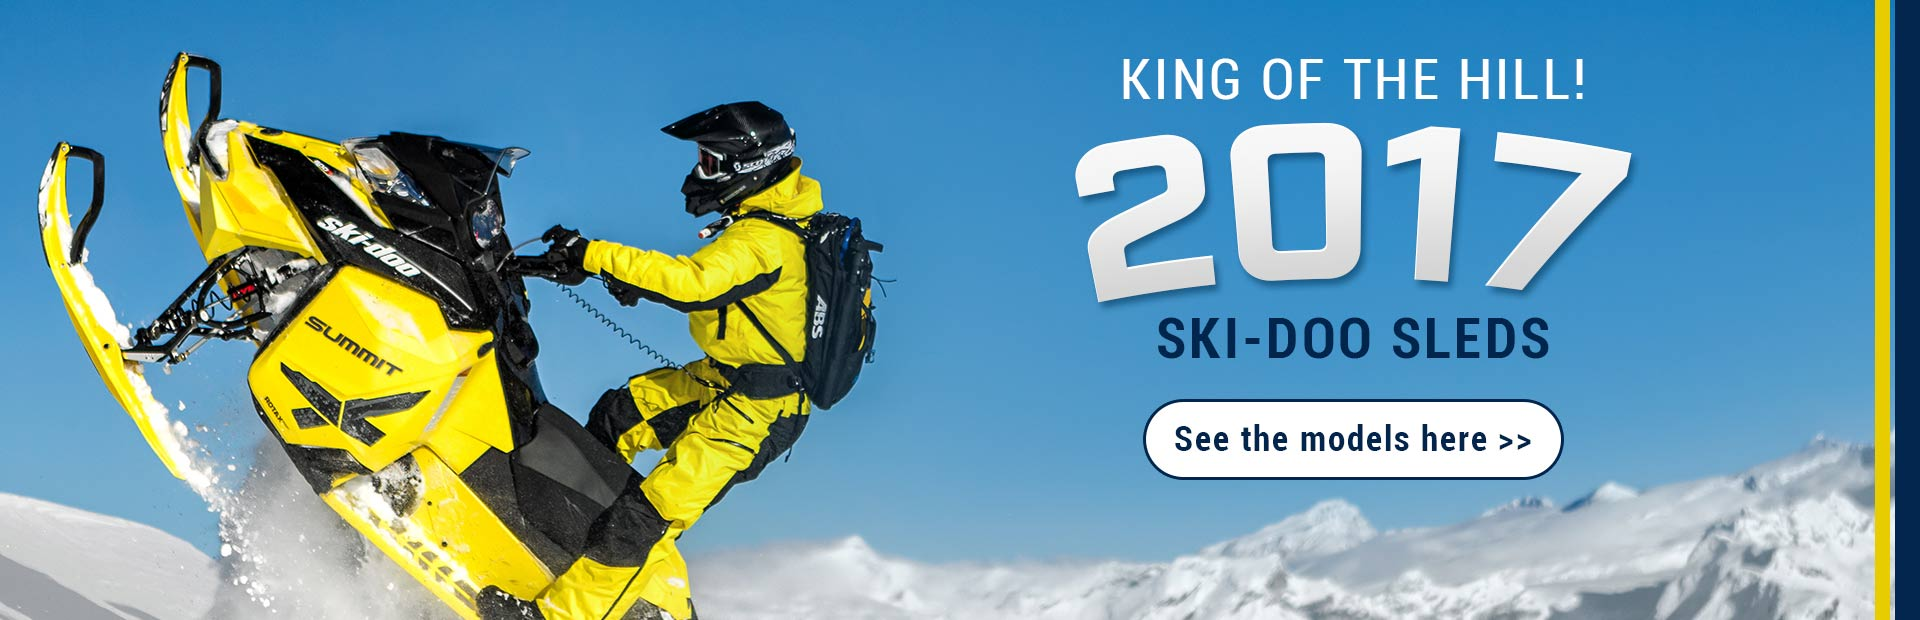 2017 Ski-Doo Sleds: Click here to see the models!